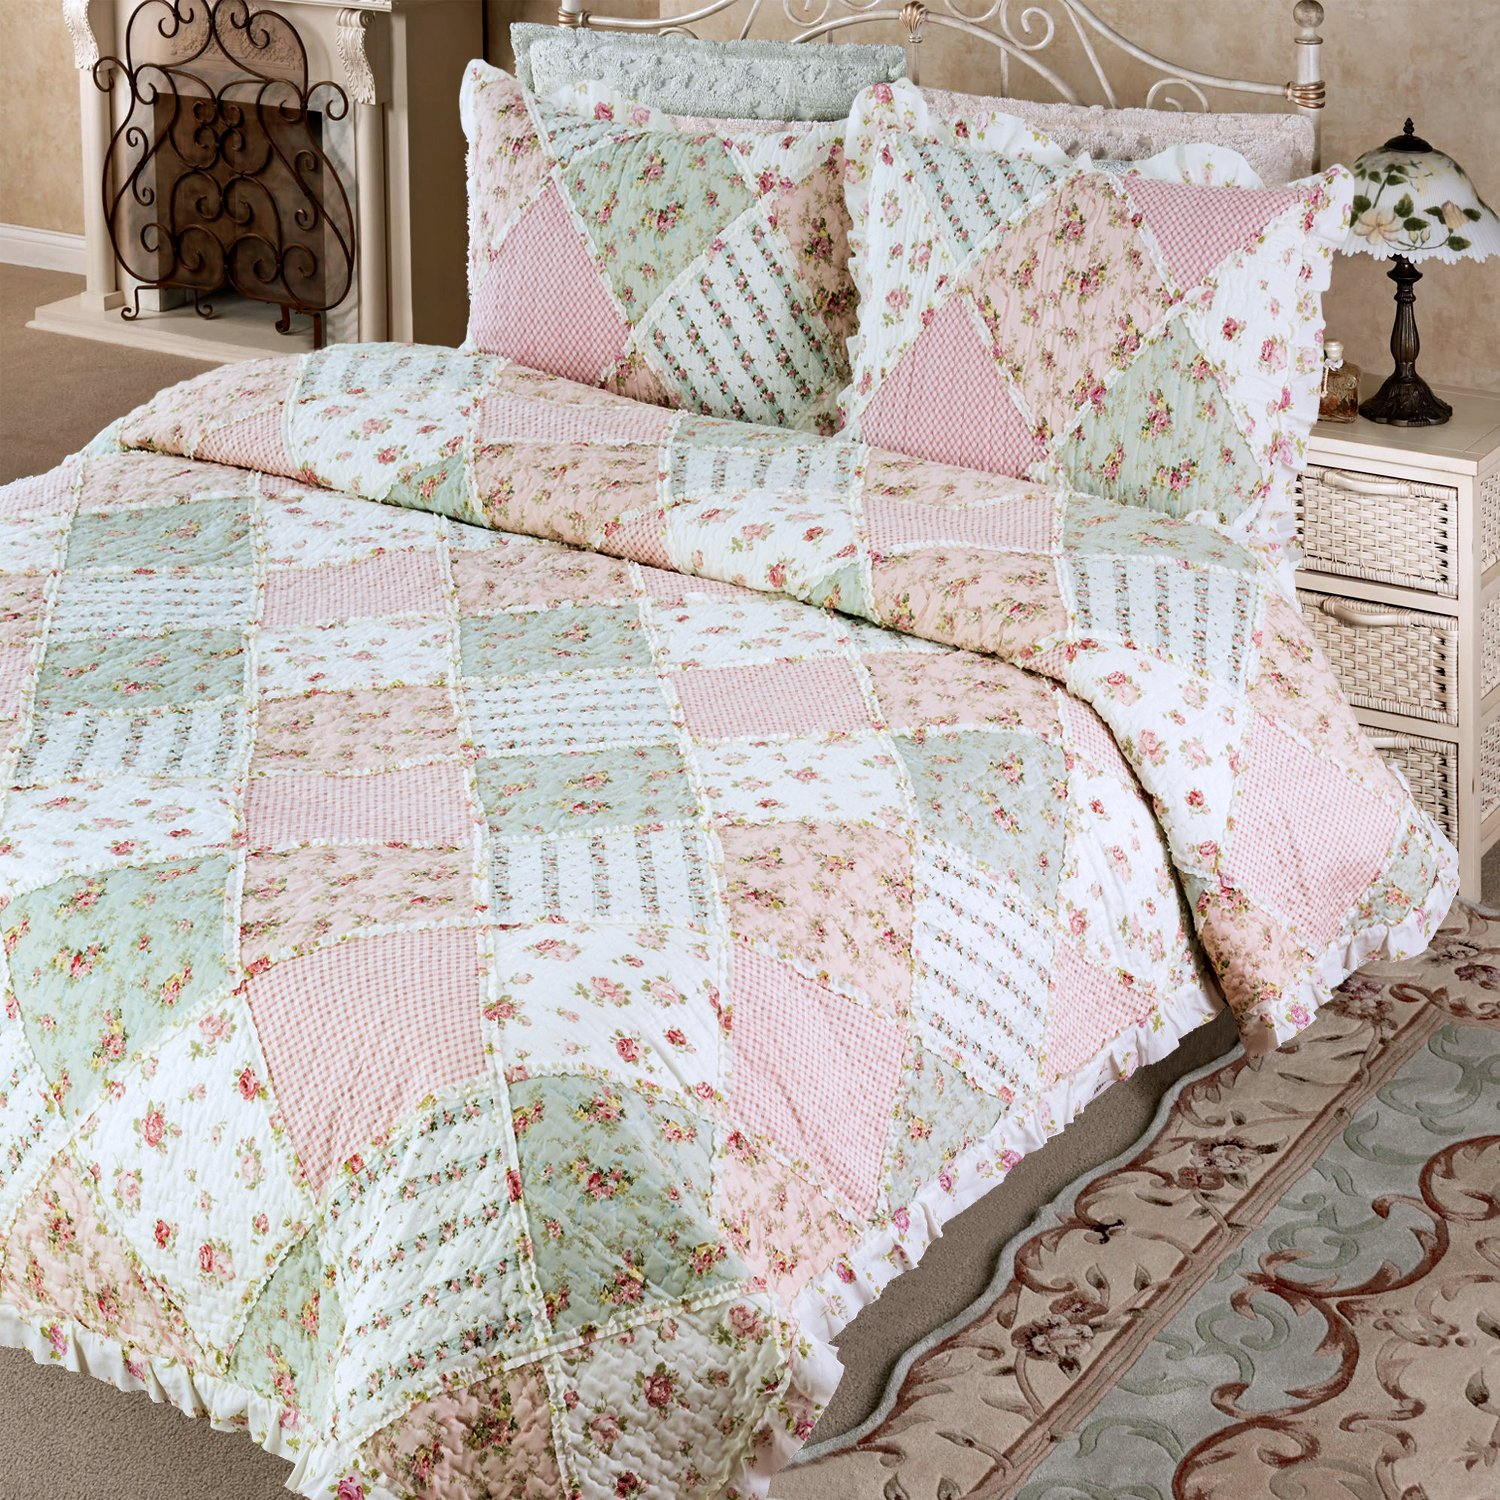 Bedsure Flourish Style Floral Design Quilt Set for All Season